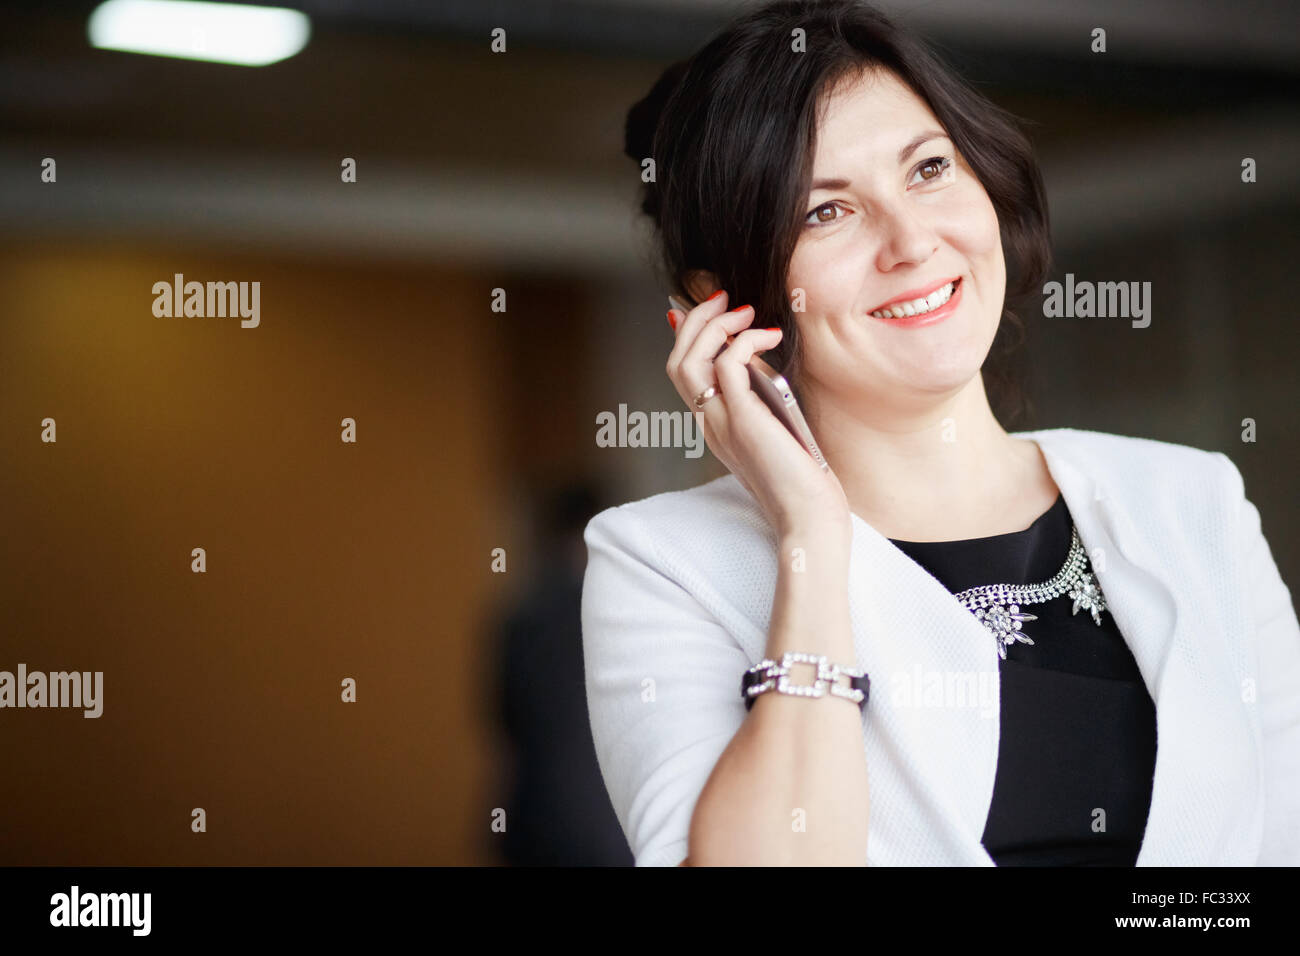 Attractive business woman talking on the phone, beaming smile, positive image, dressed white suit with strict black - Stock Image